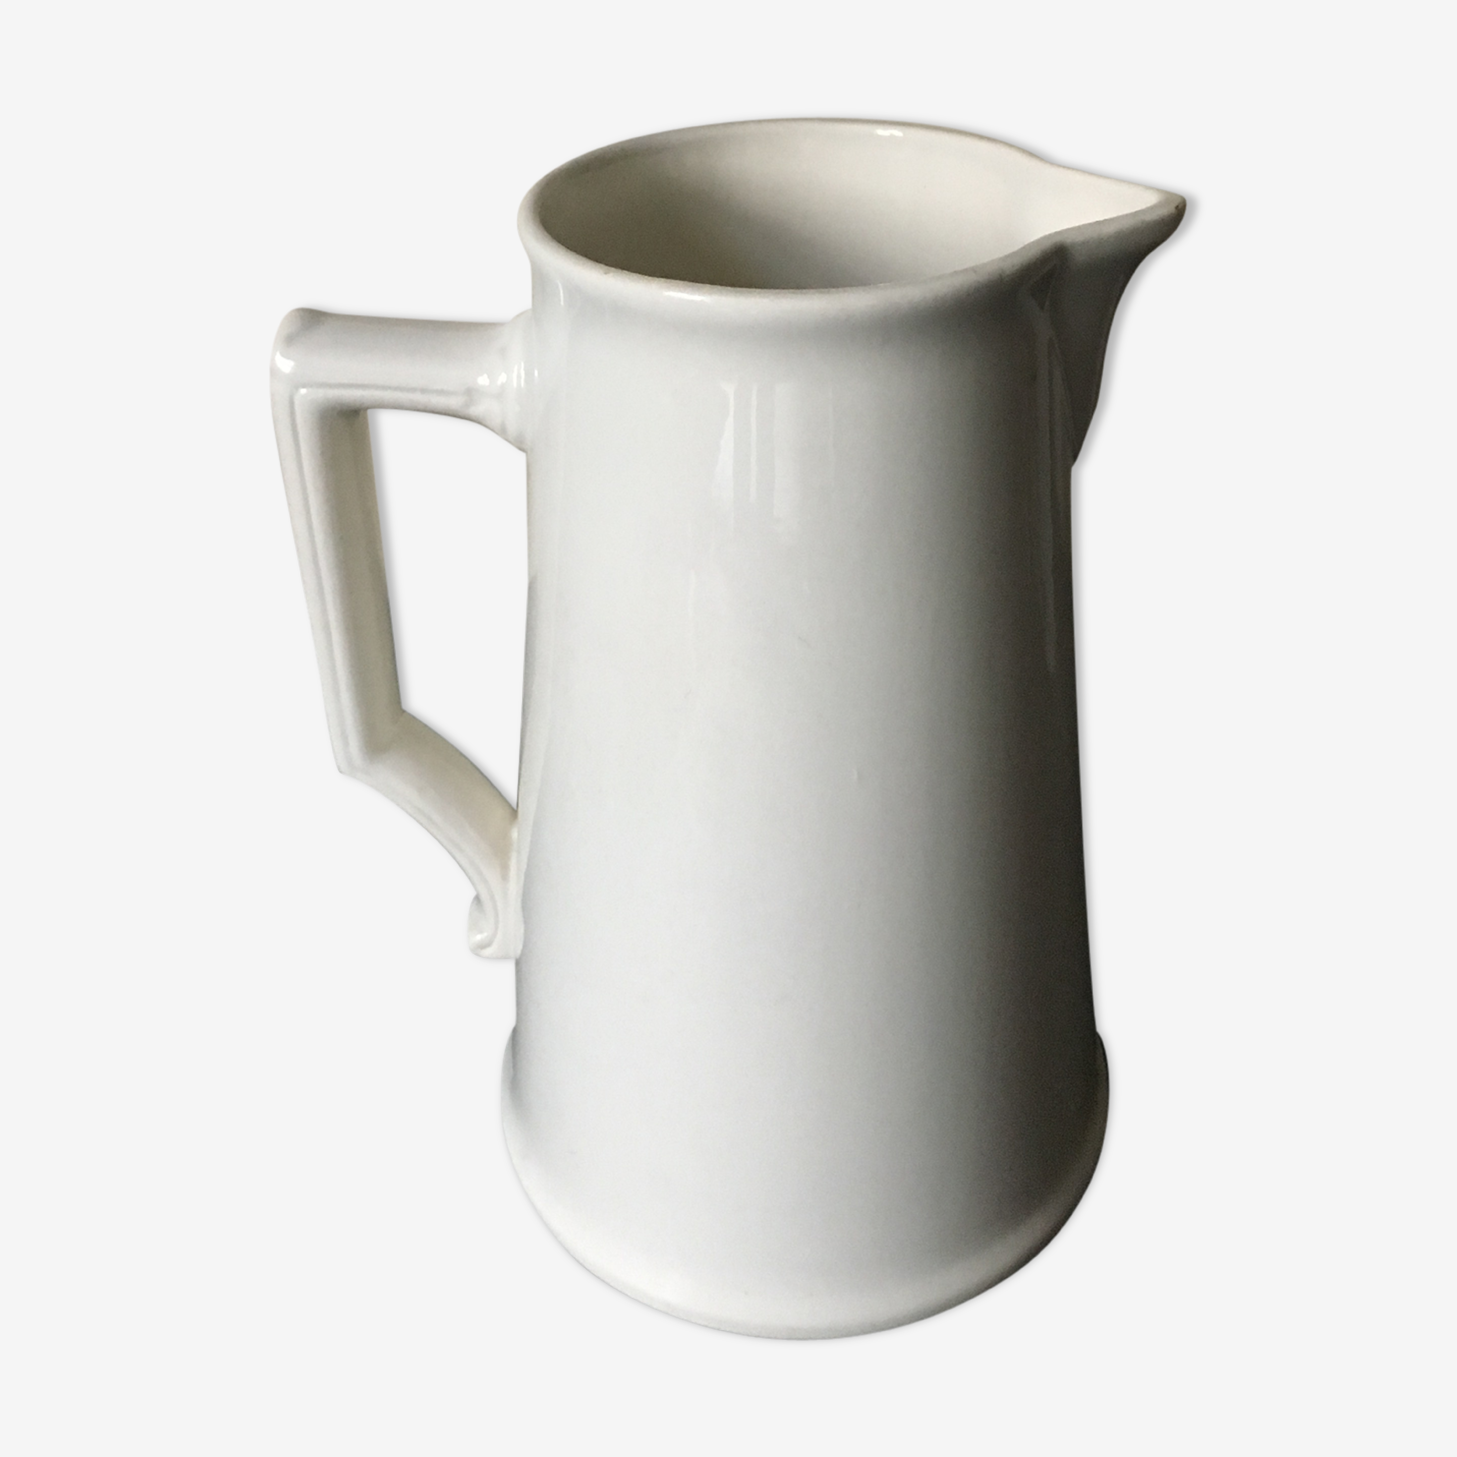 Large jug in water 19th white earthenware